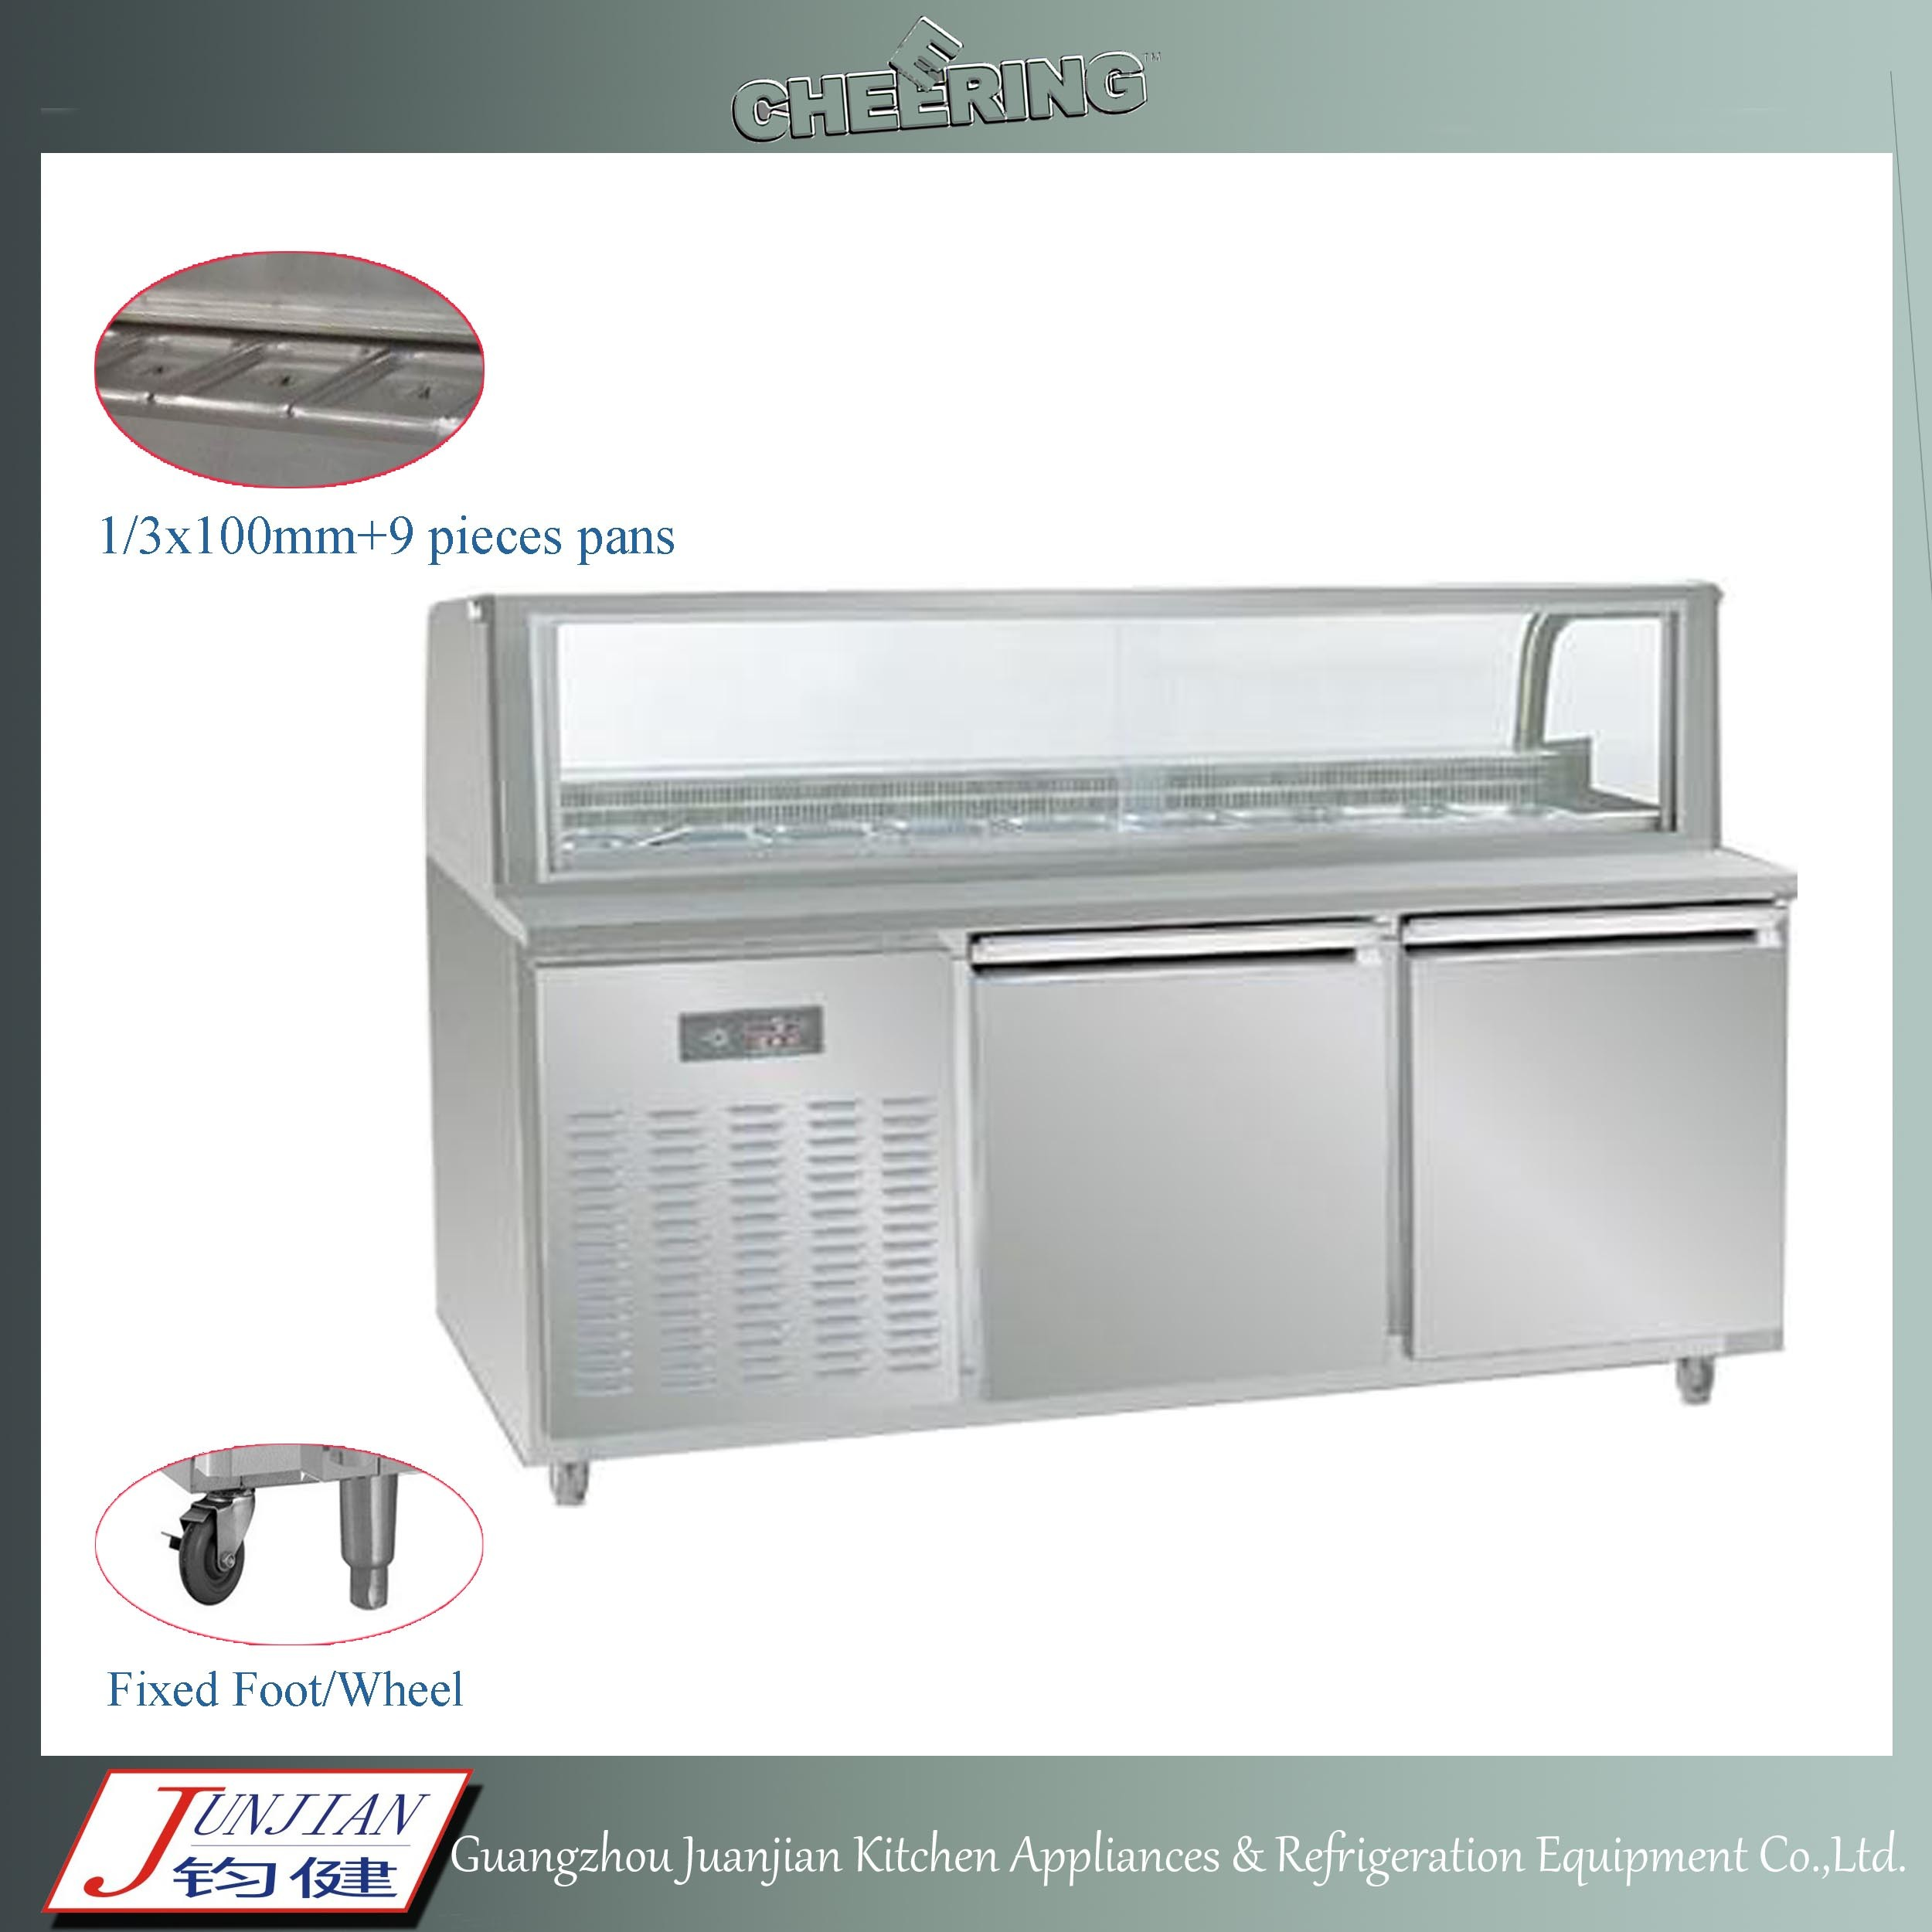 China Cheering Stainless Steel And Glass Commercial Restaurant - Commercial sandwich prep table